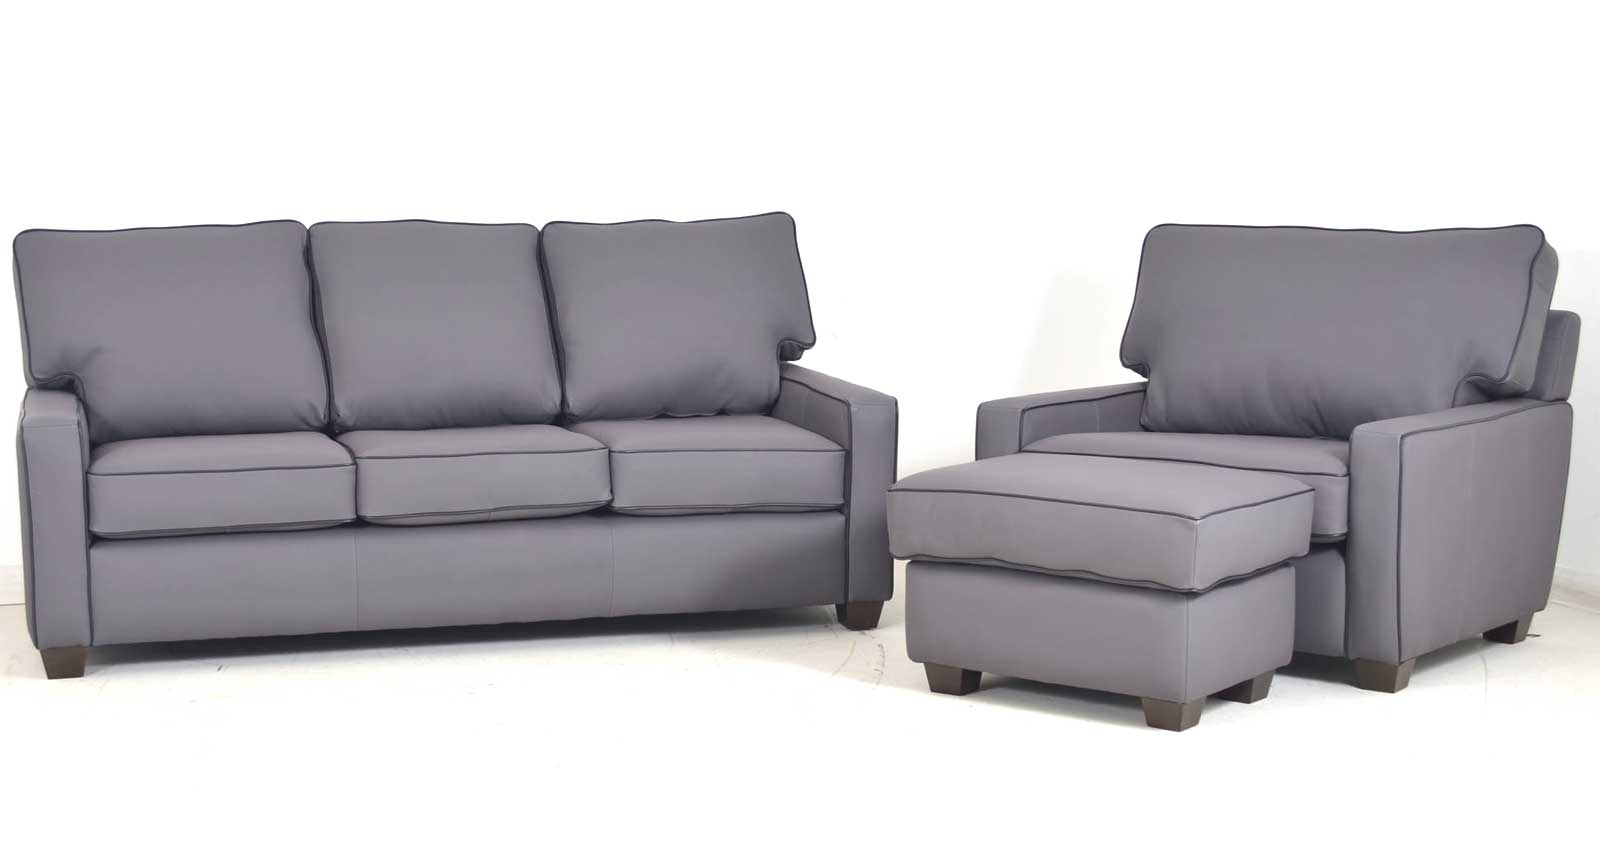 Sofa Chair Ottoman